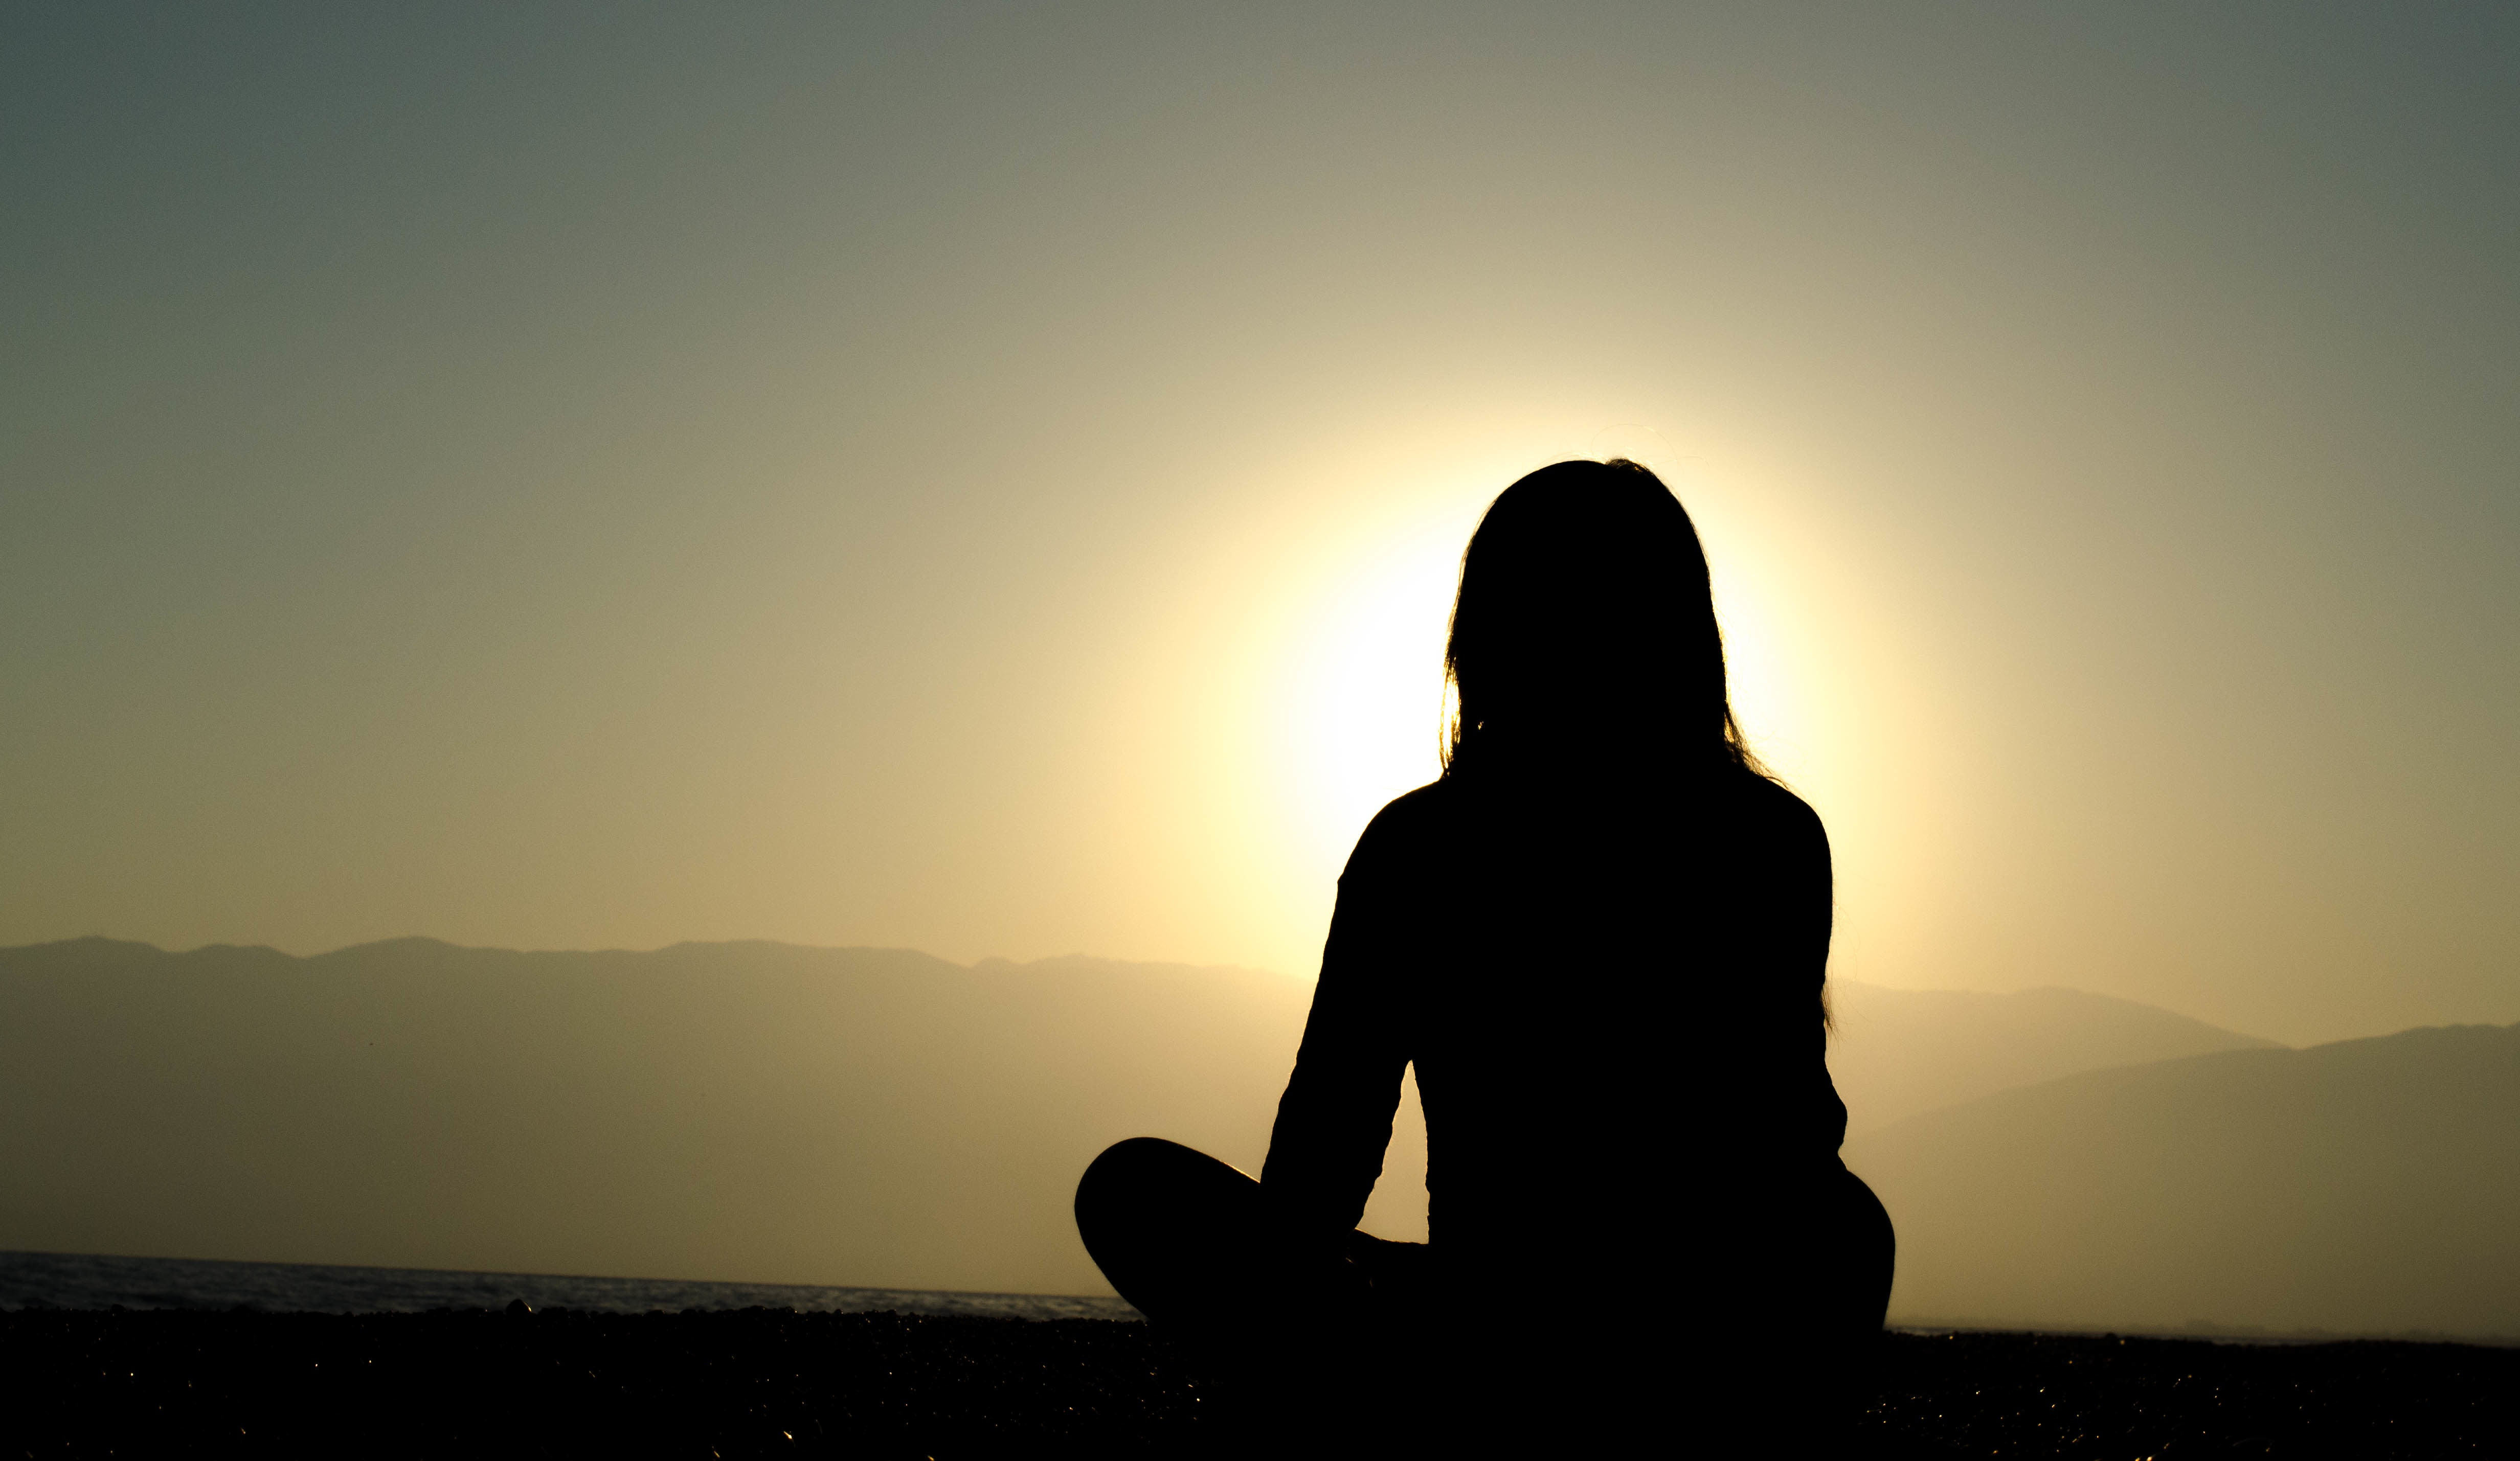 Outline of woman sitting on hill watching the sunset.